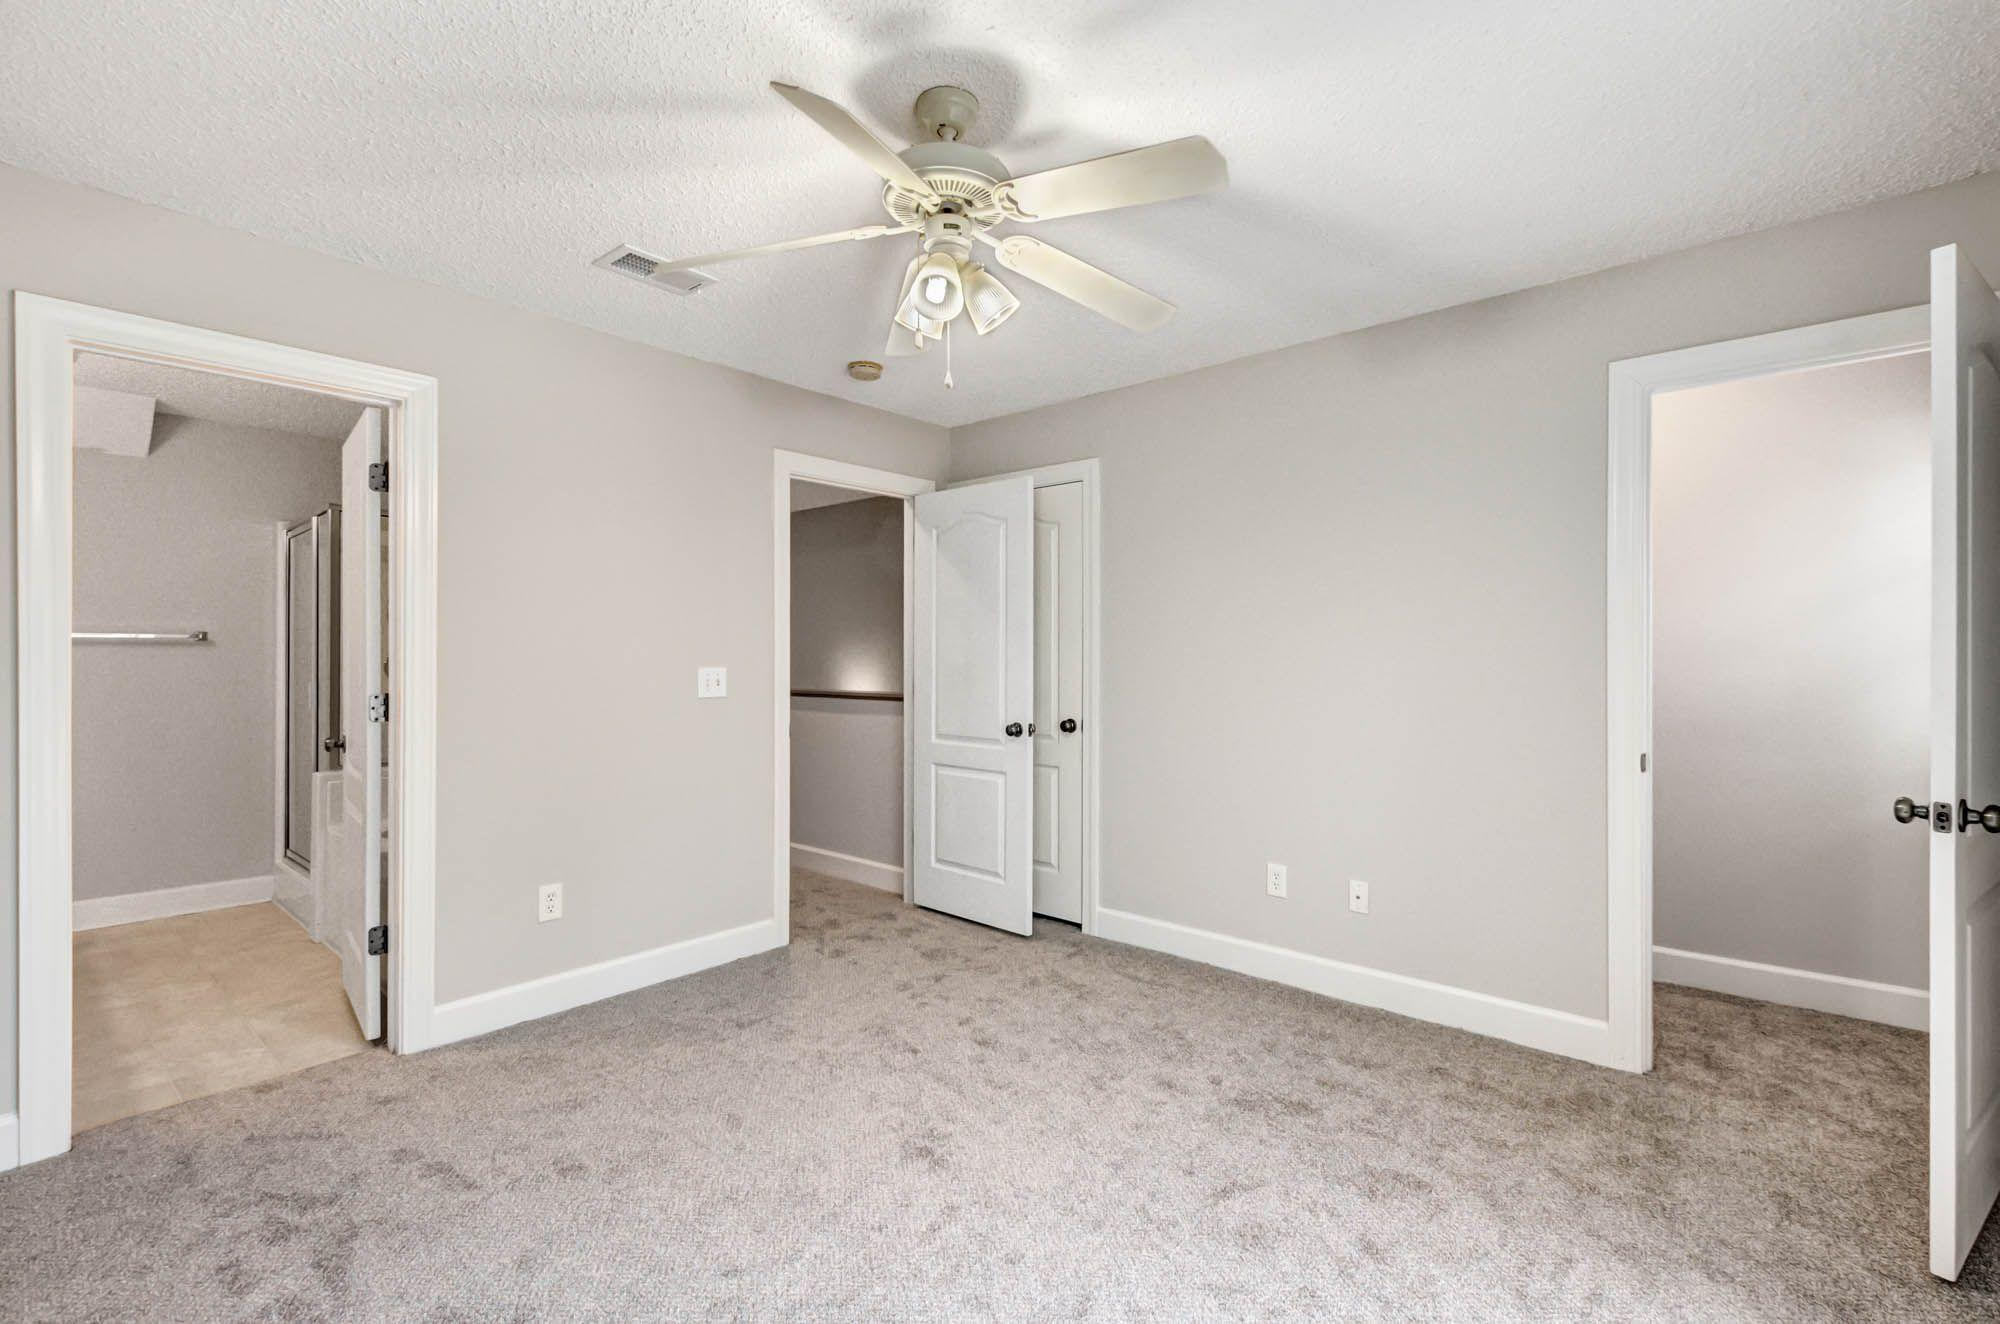 Whitney Lake Condos For Sale - 2926 Sugarberry, Johns Island, SC - 12